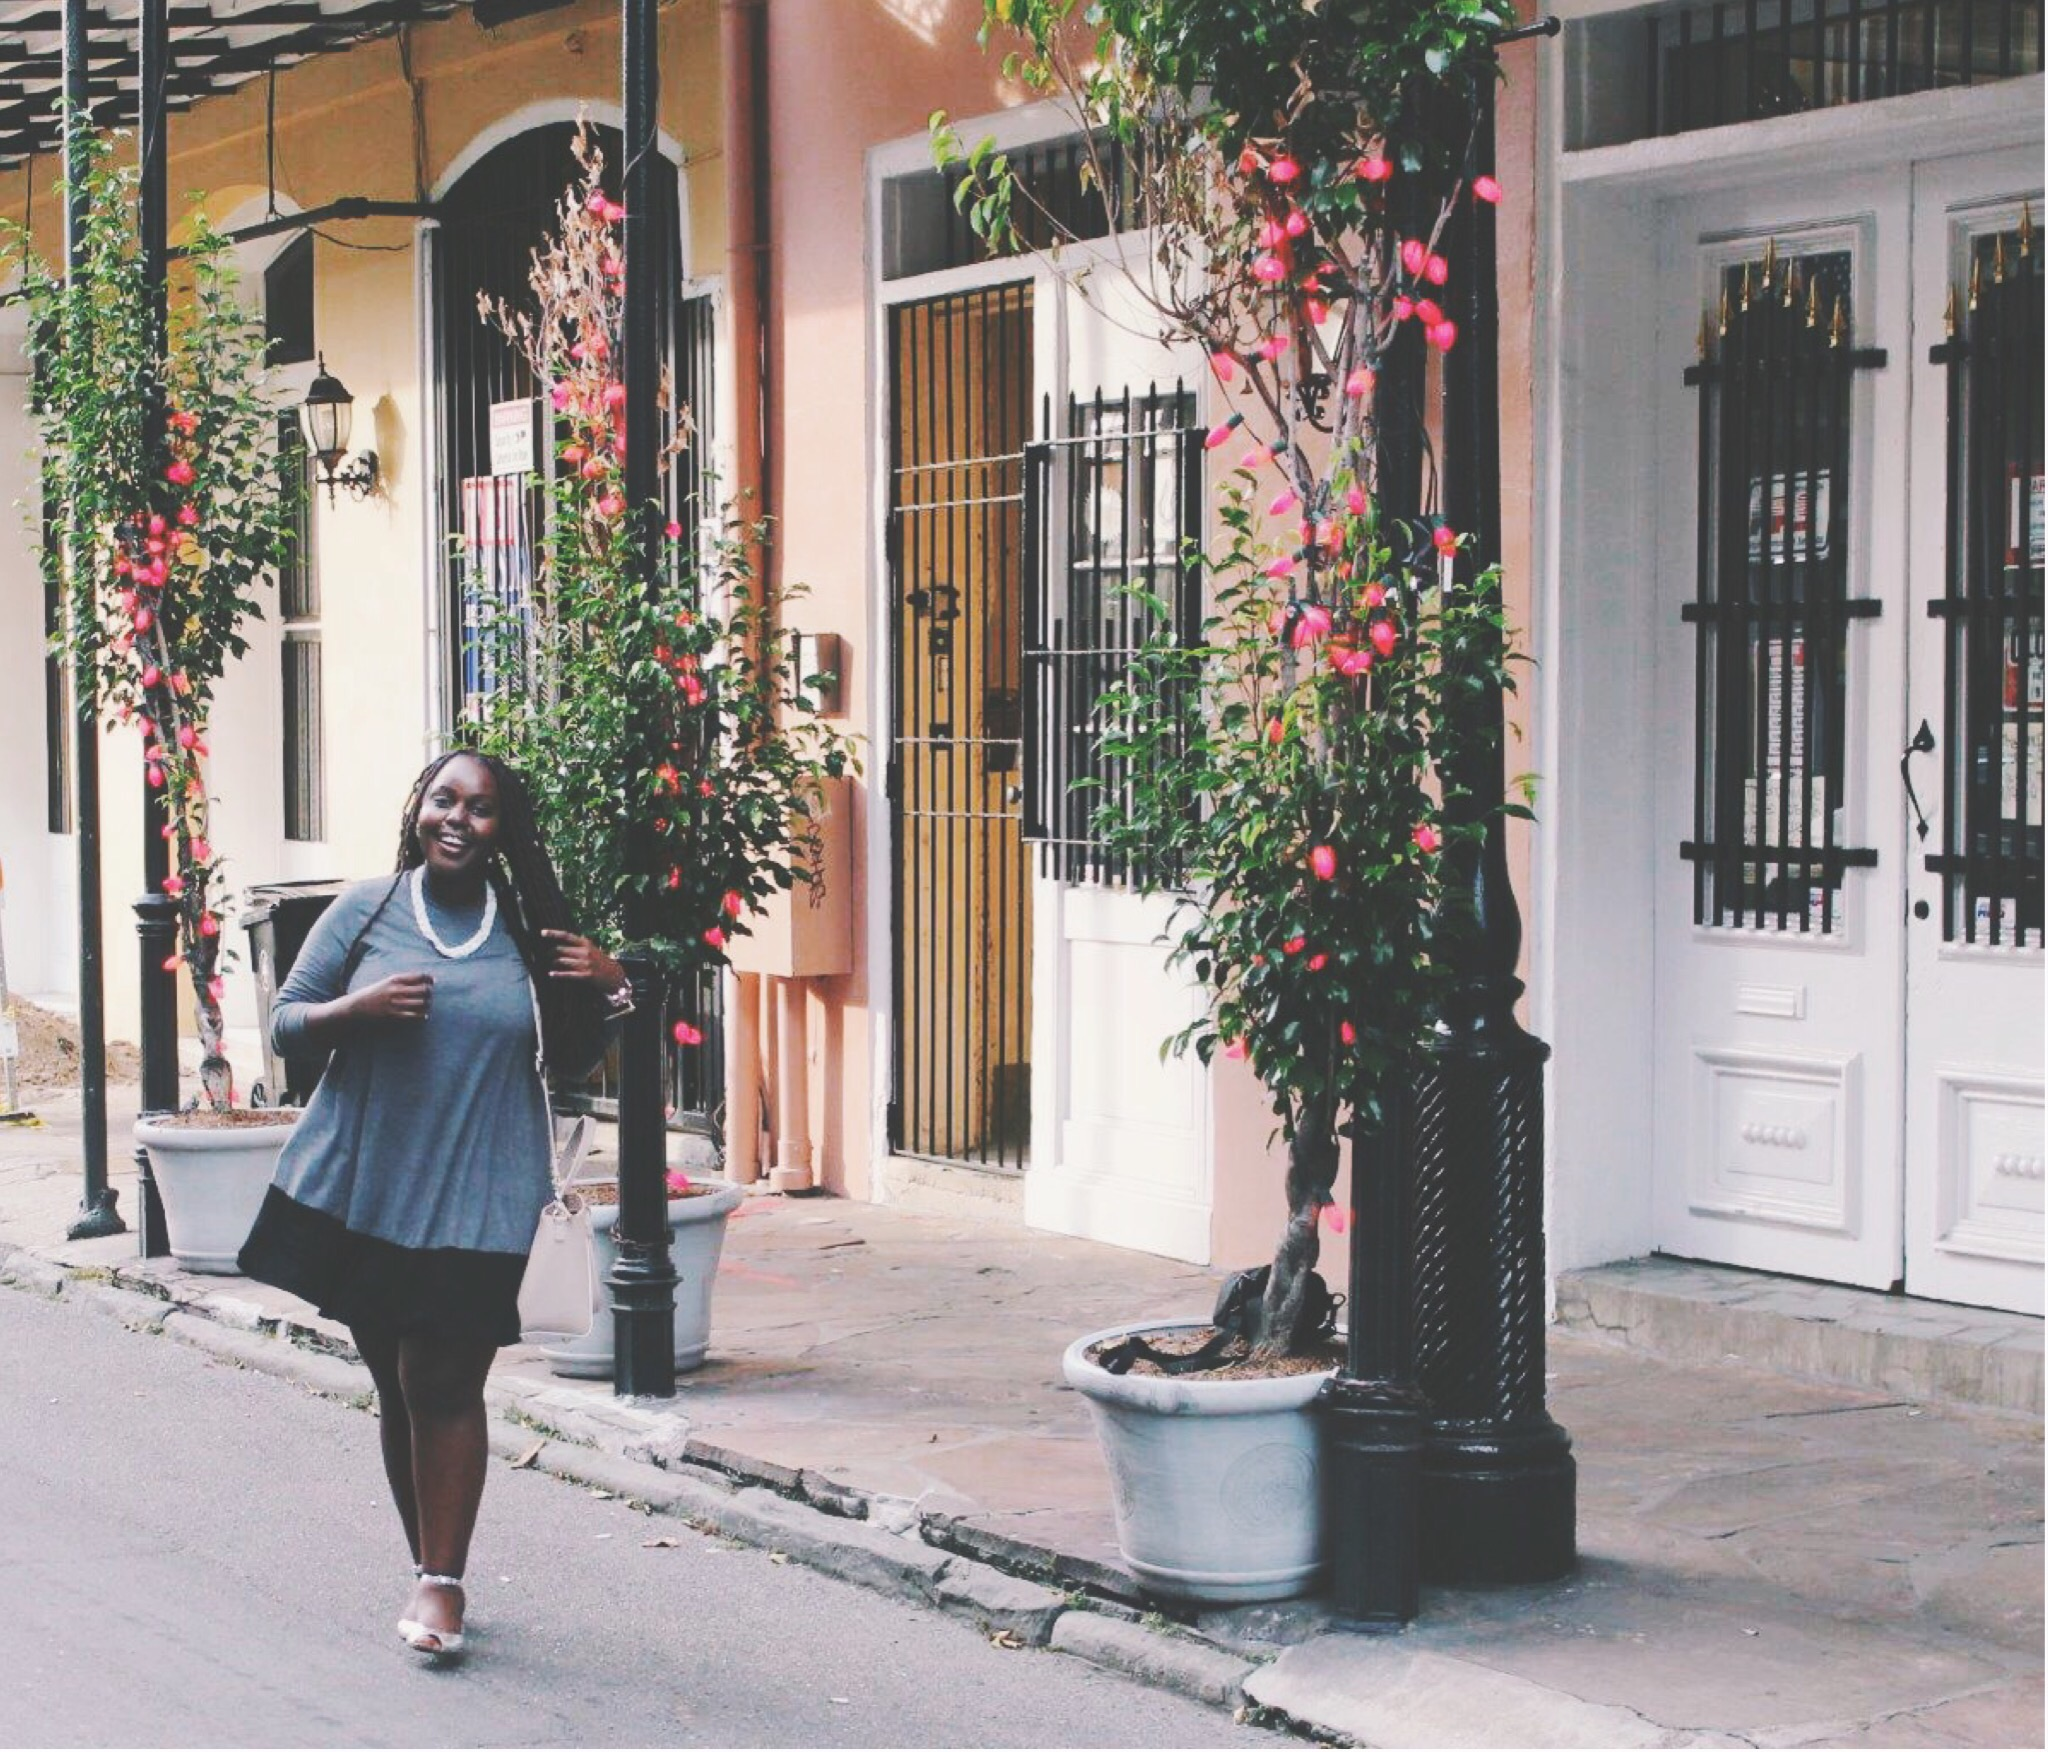 The French Quarter in New Orleans. Travel Blog